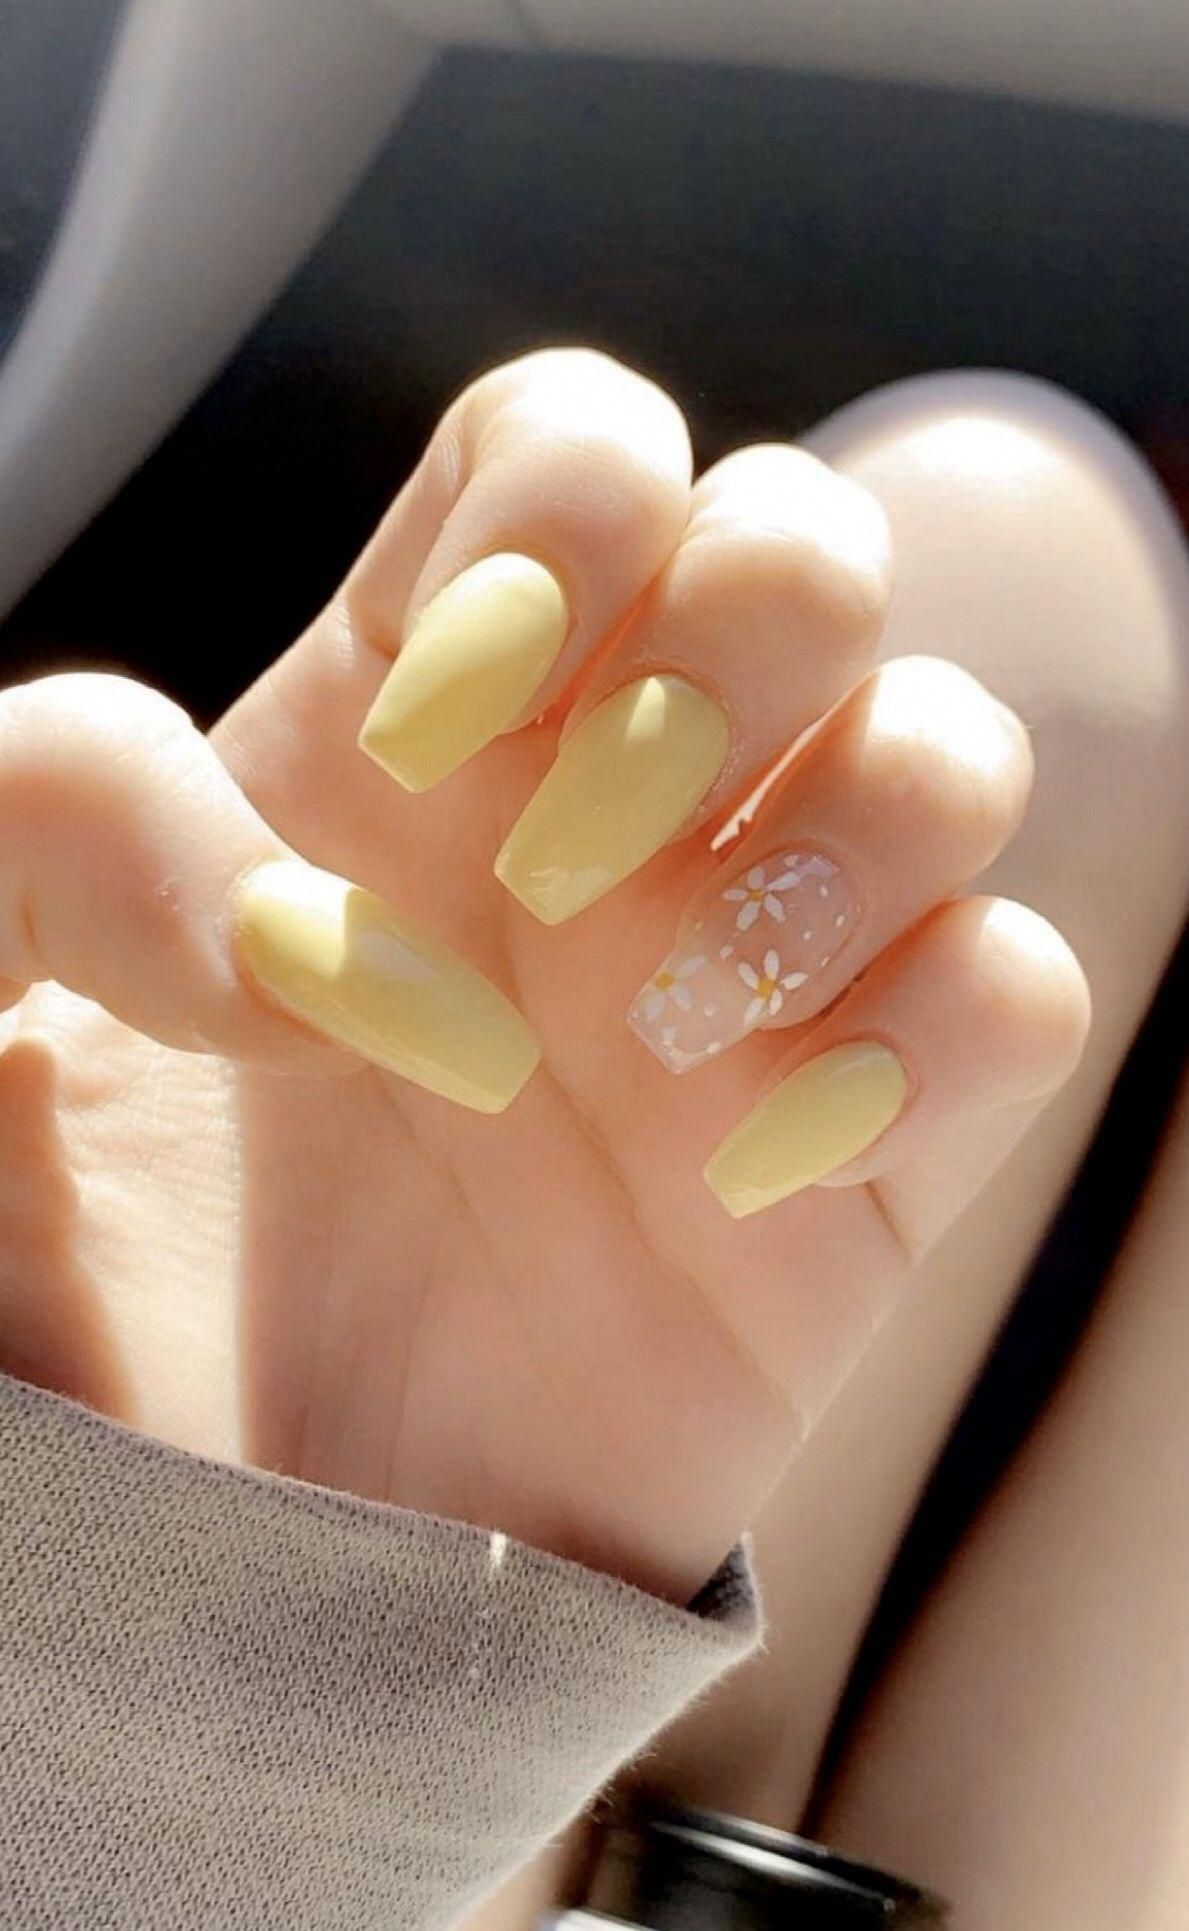 Summeracrylicnails In 2020 Acrylic Nails Coffin Short Short Acrylic Nails Designs Cute Acrylic Nails